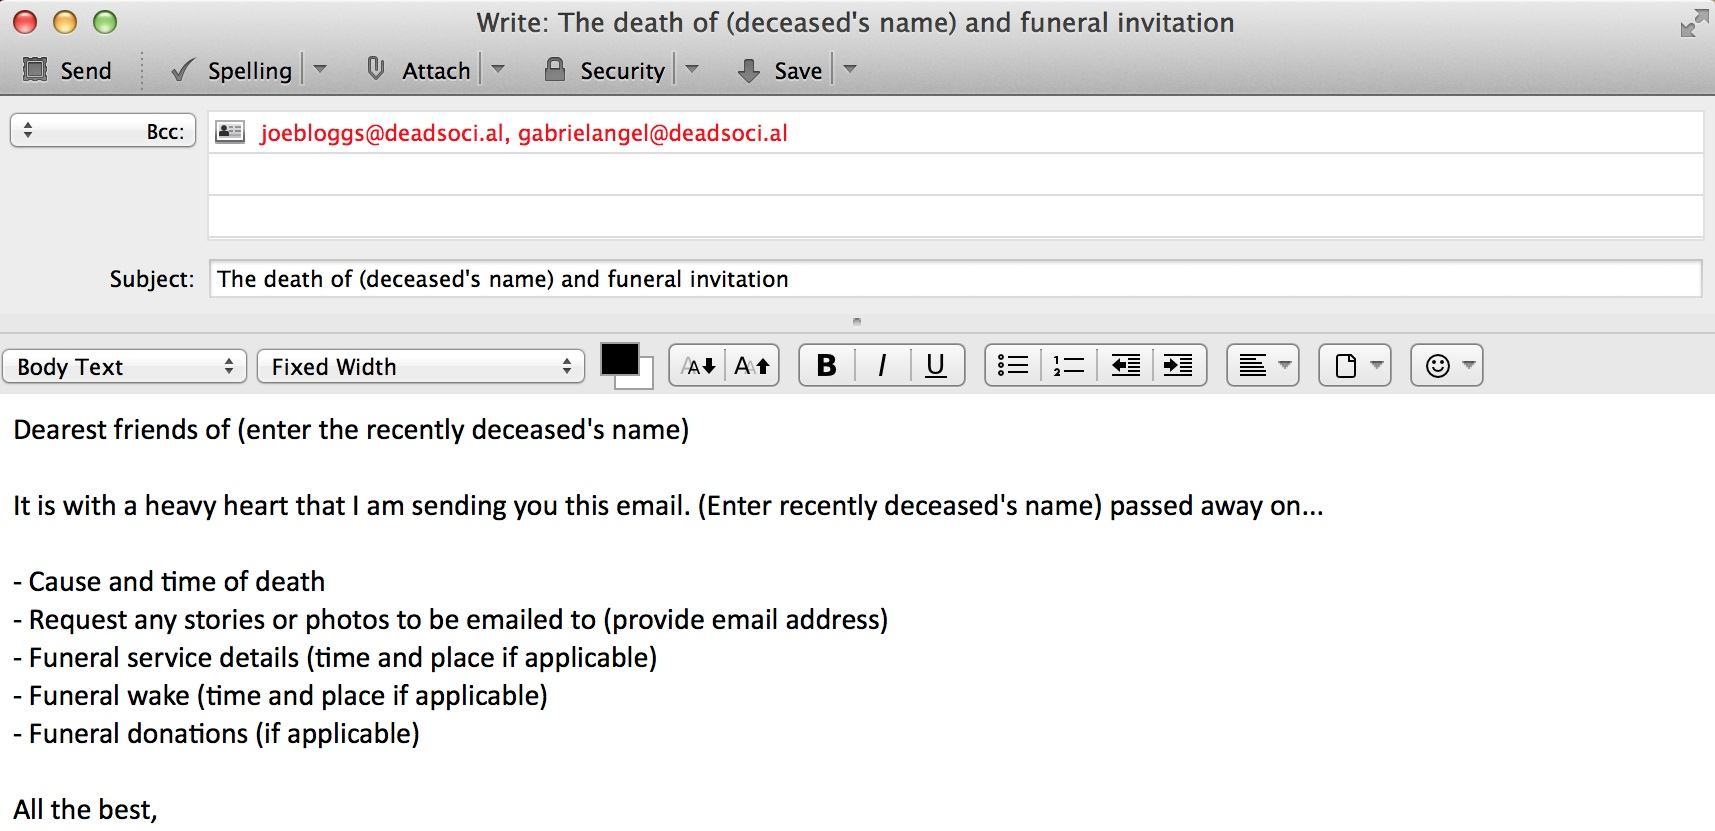 Funeral invitation via email template